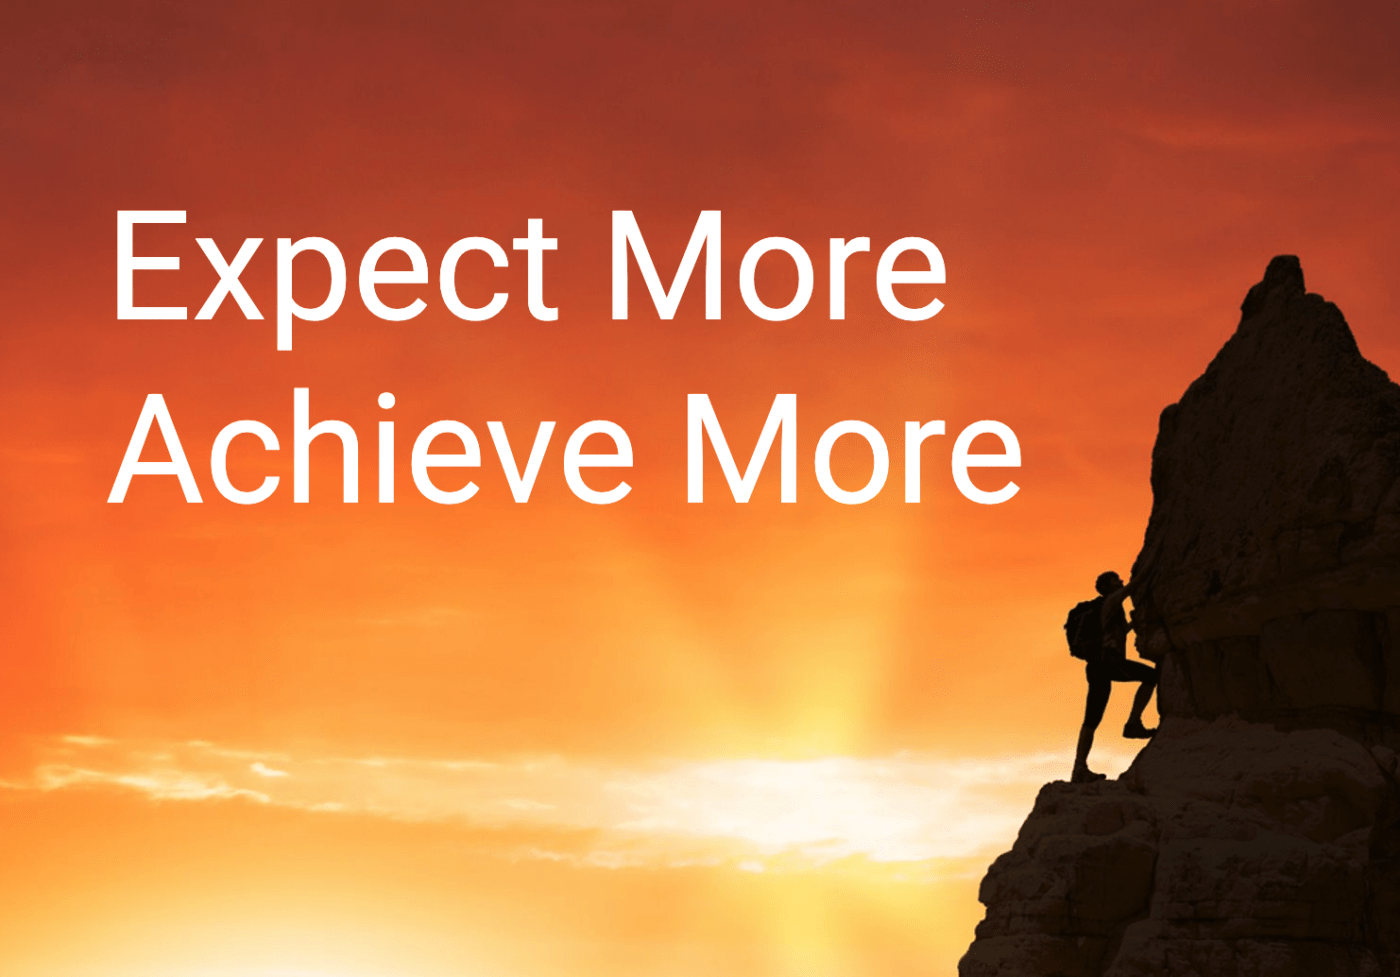 Expect More, and They Will Deliver - image Snip20210922_6-1400x977 on http://cavemaninasuit.com